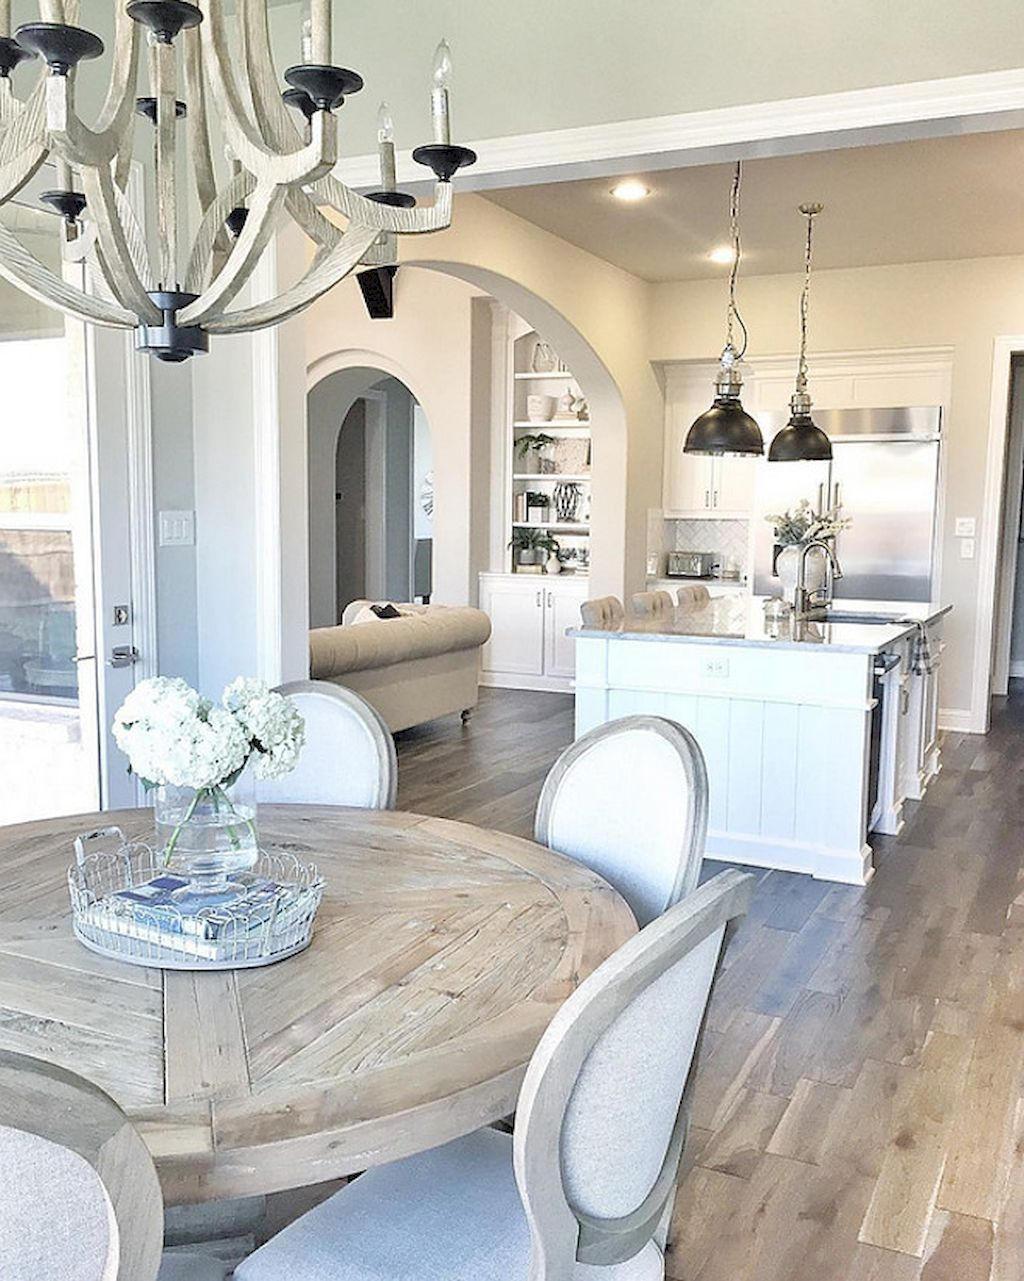 Adorable 65 French Country Dining Room Furniture Design Ideas Https Livinking Com 2017 08 06 65 French Farmhouse Kitchen Design Home Farmhouse Dining Room